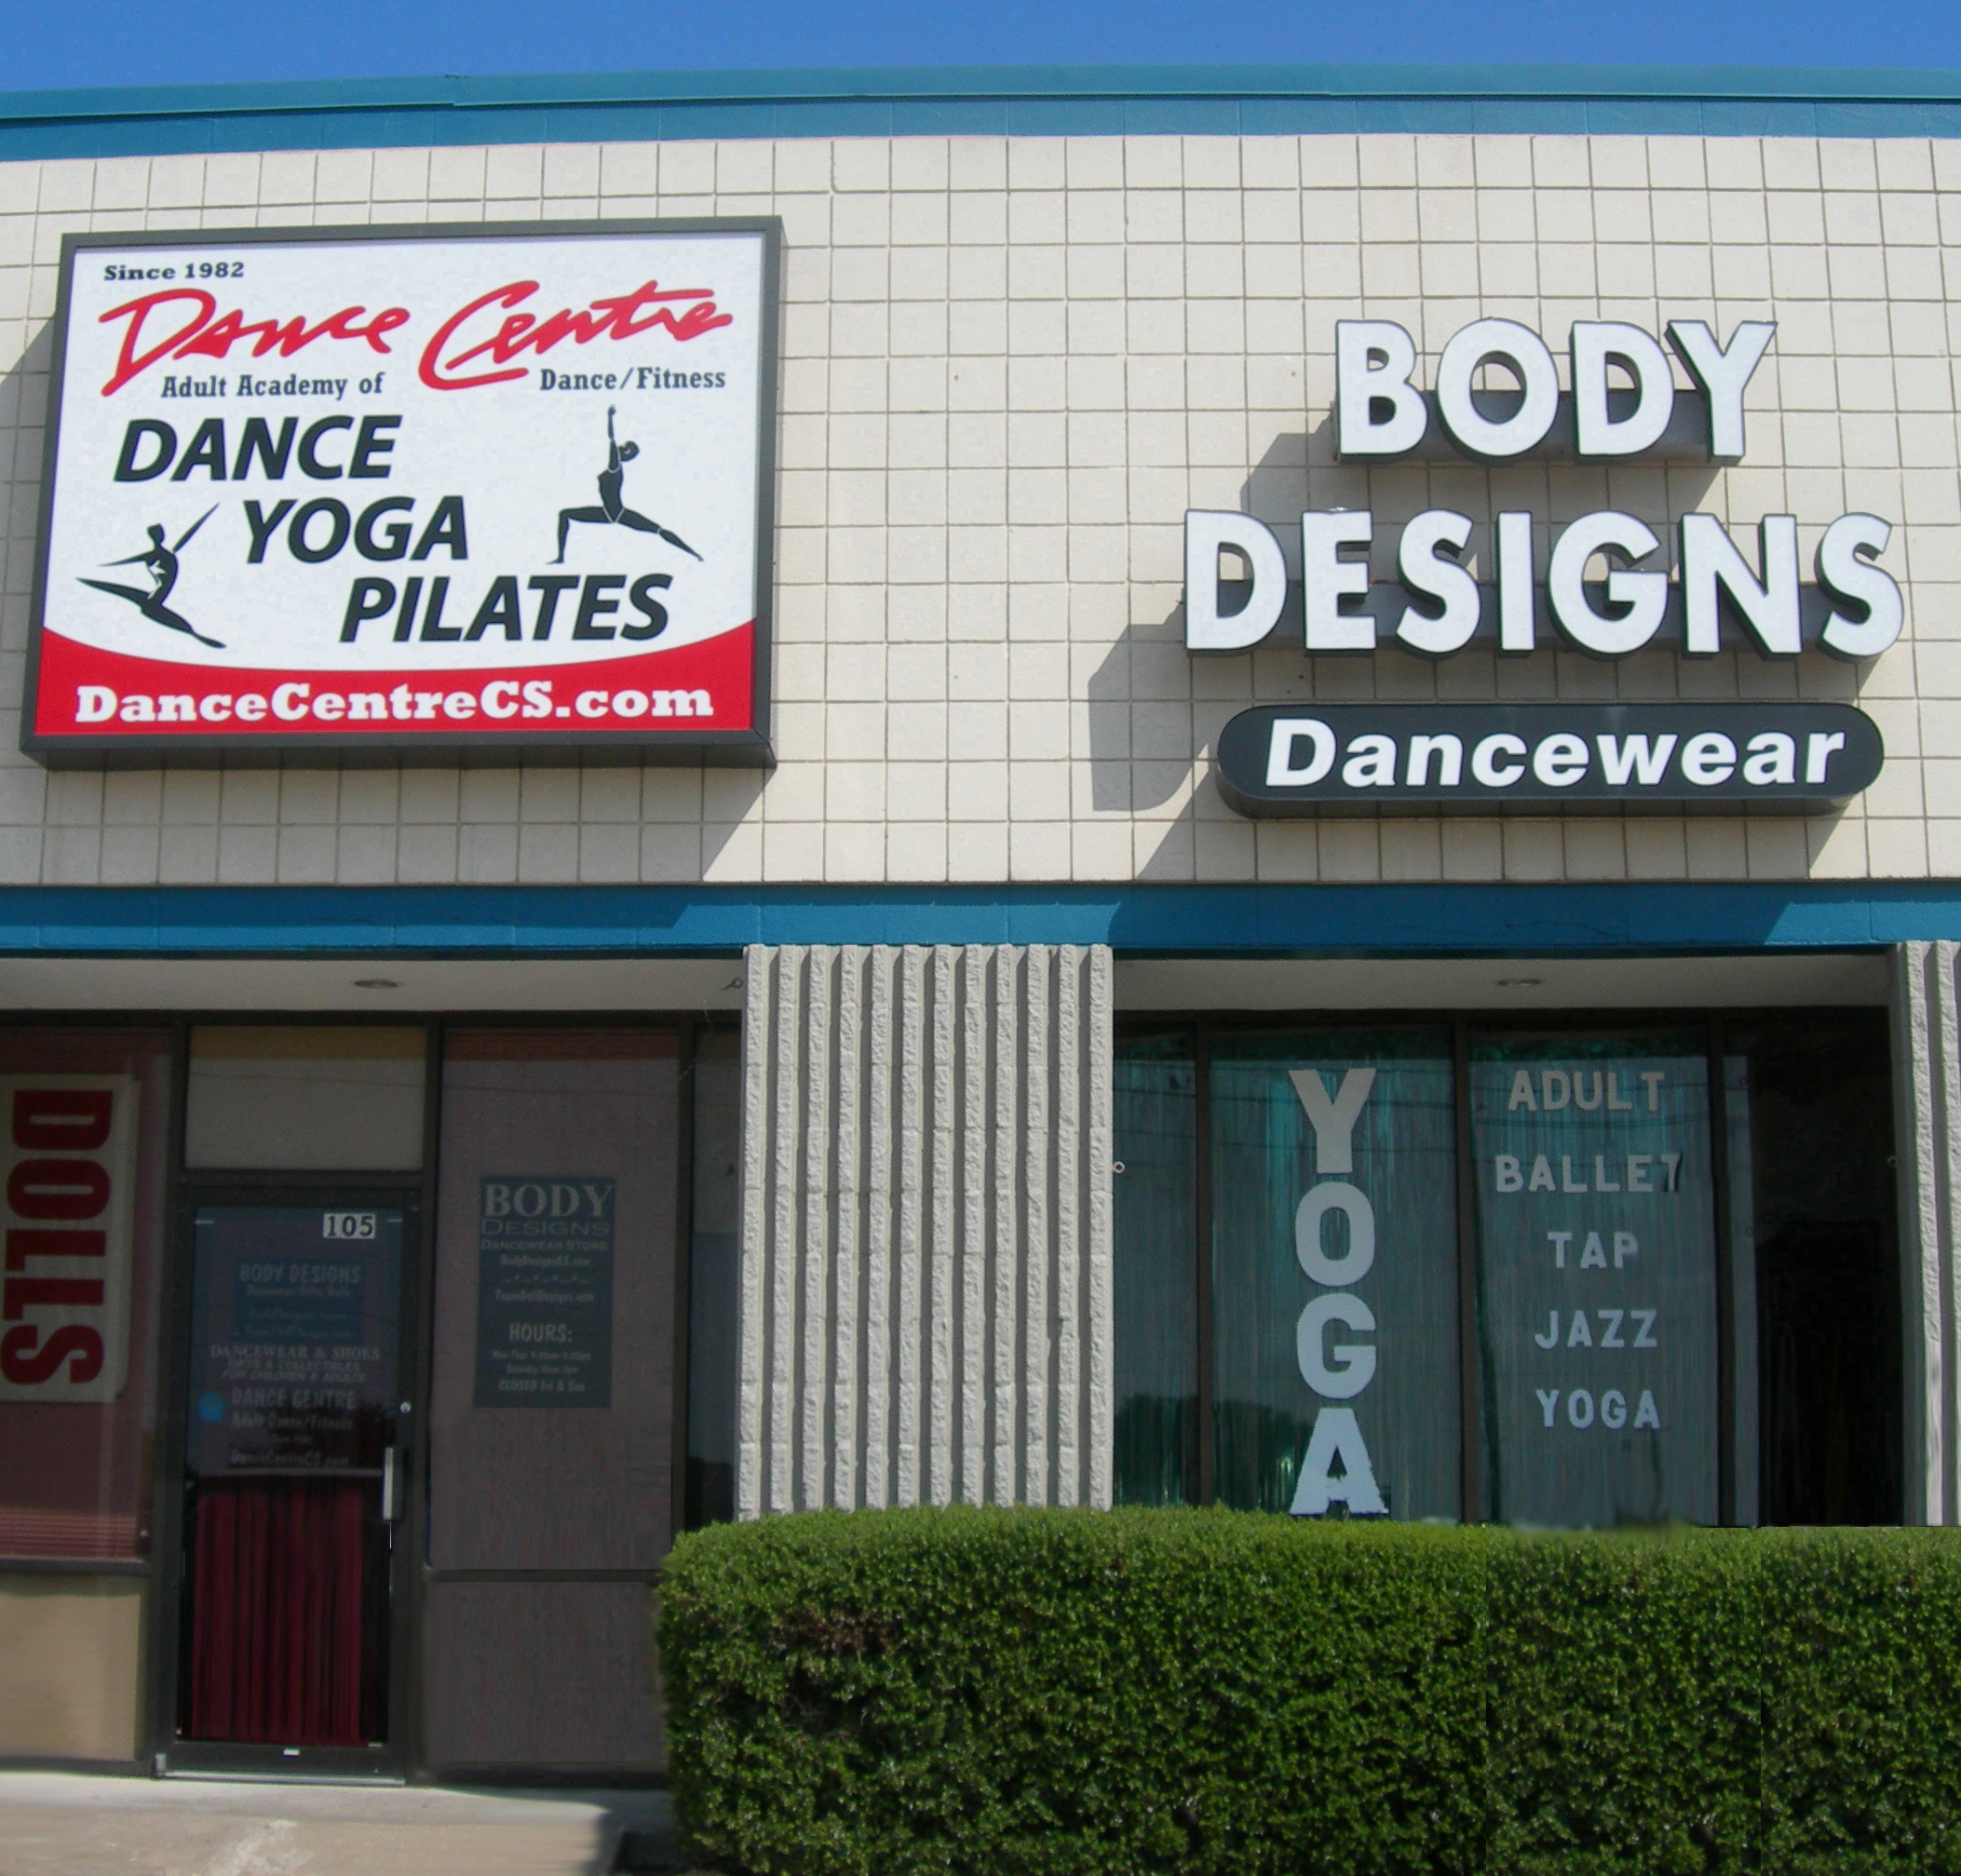 Body Designs Dancewear, Dance Centre 